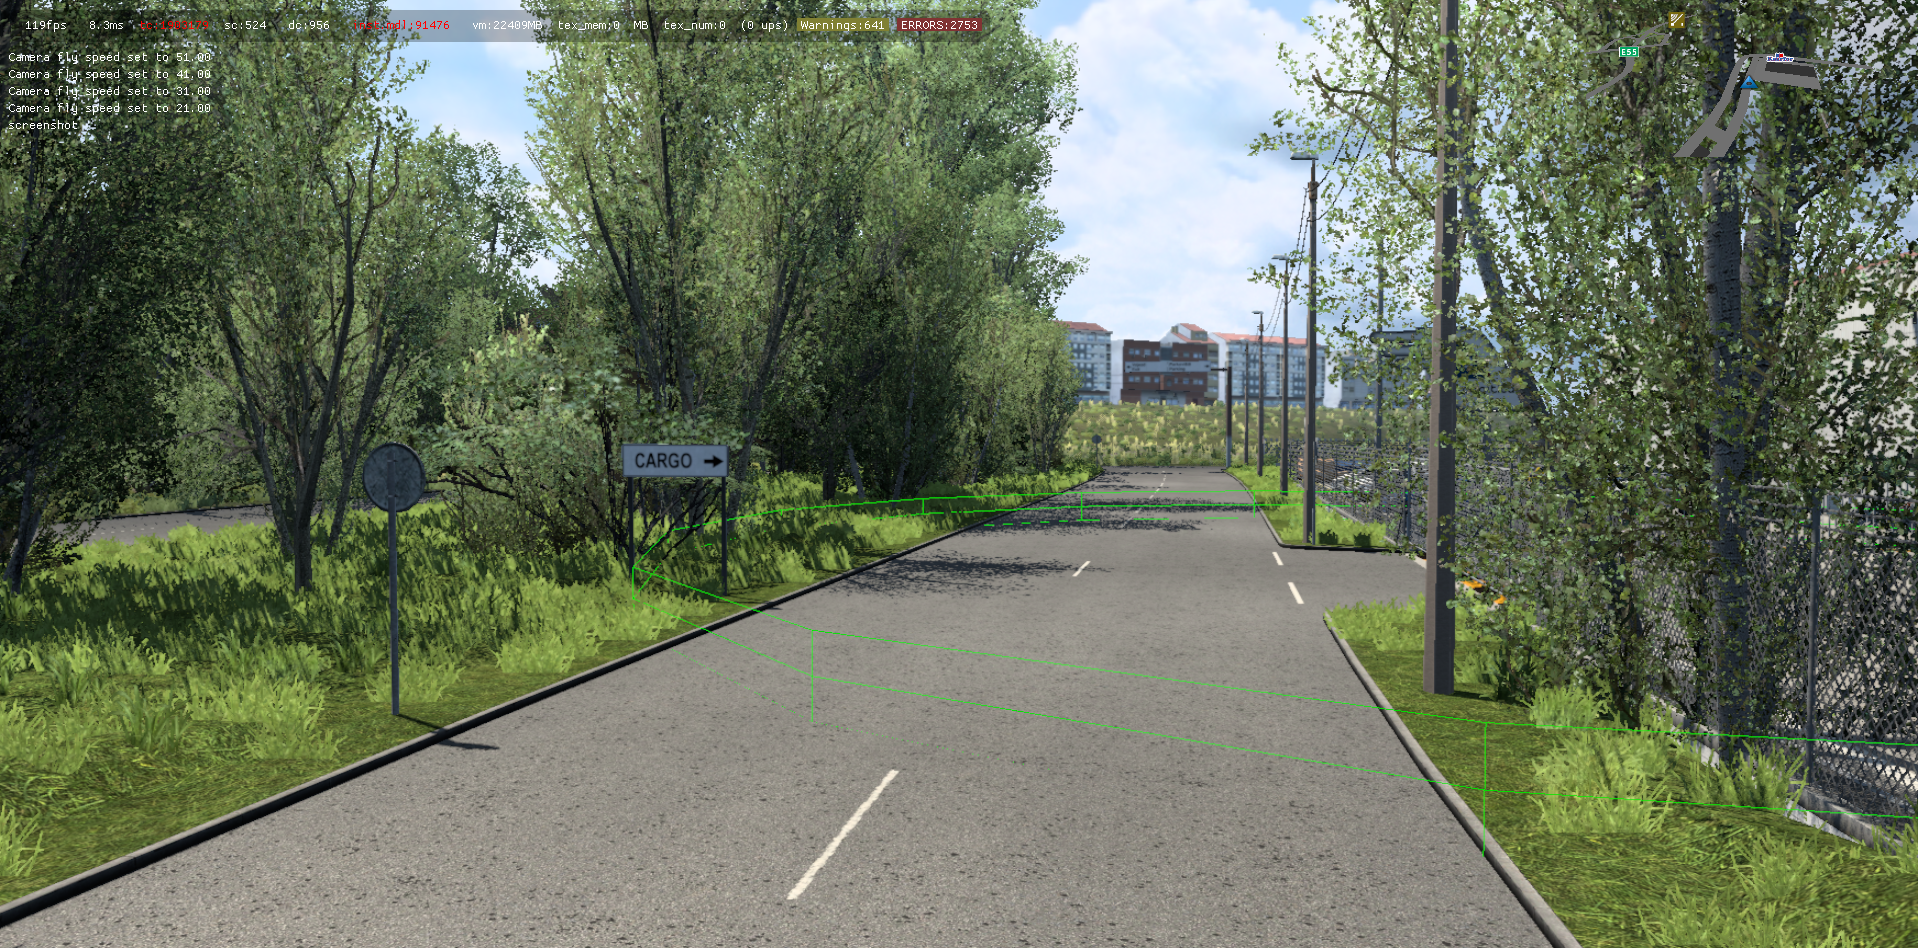 ets2_20210821_205621_00.png